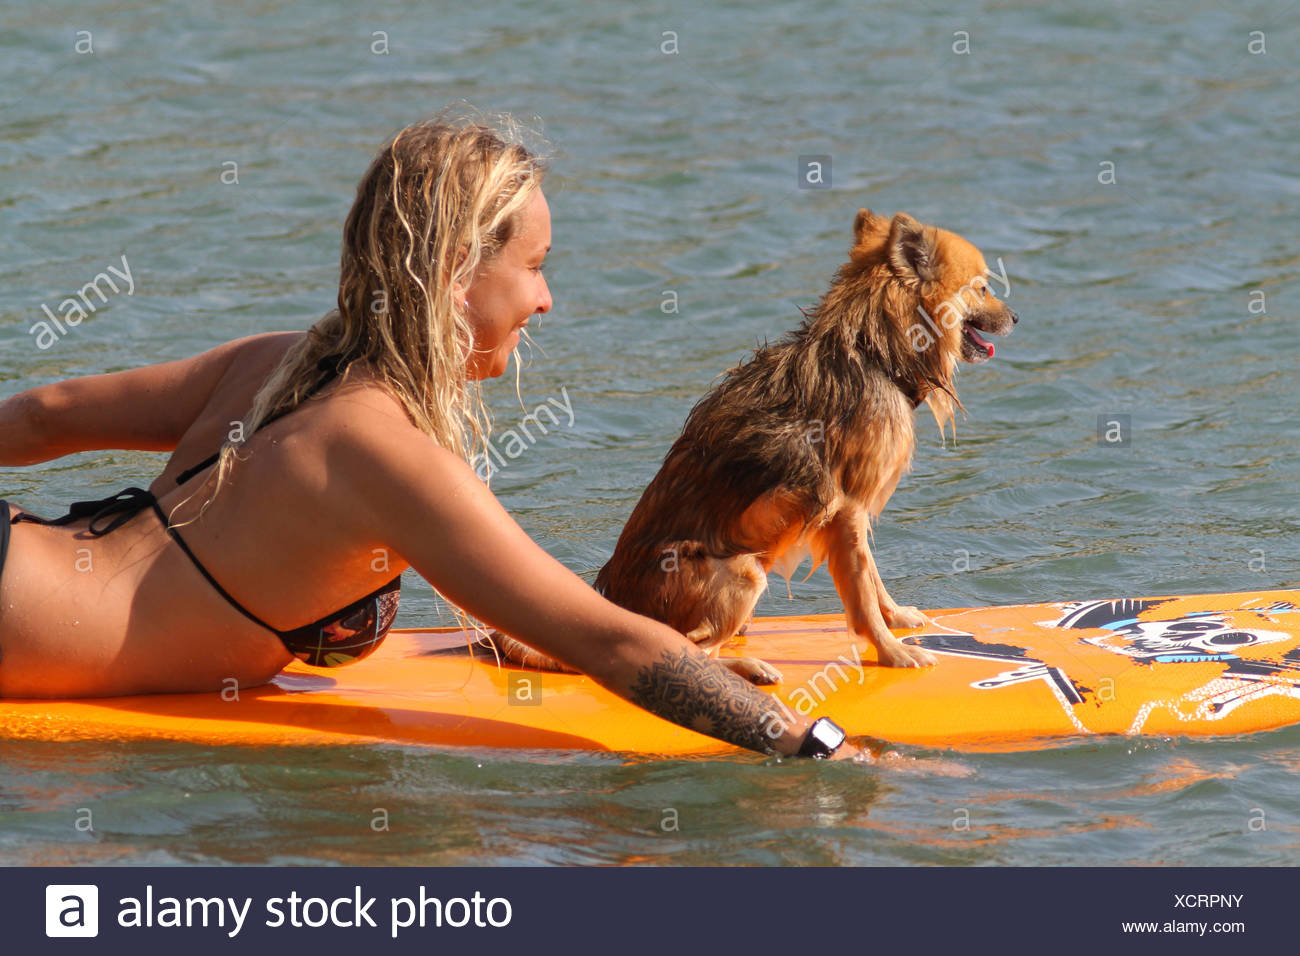 Surfer girl with a dog. - Stock Image